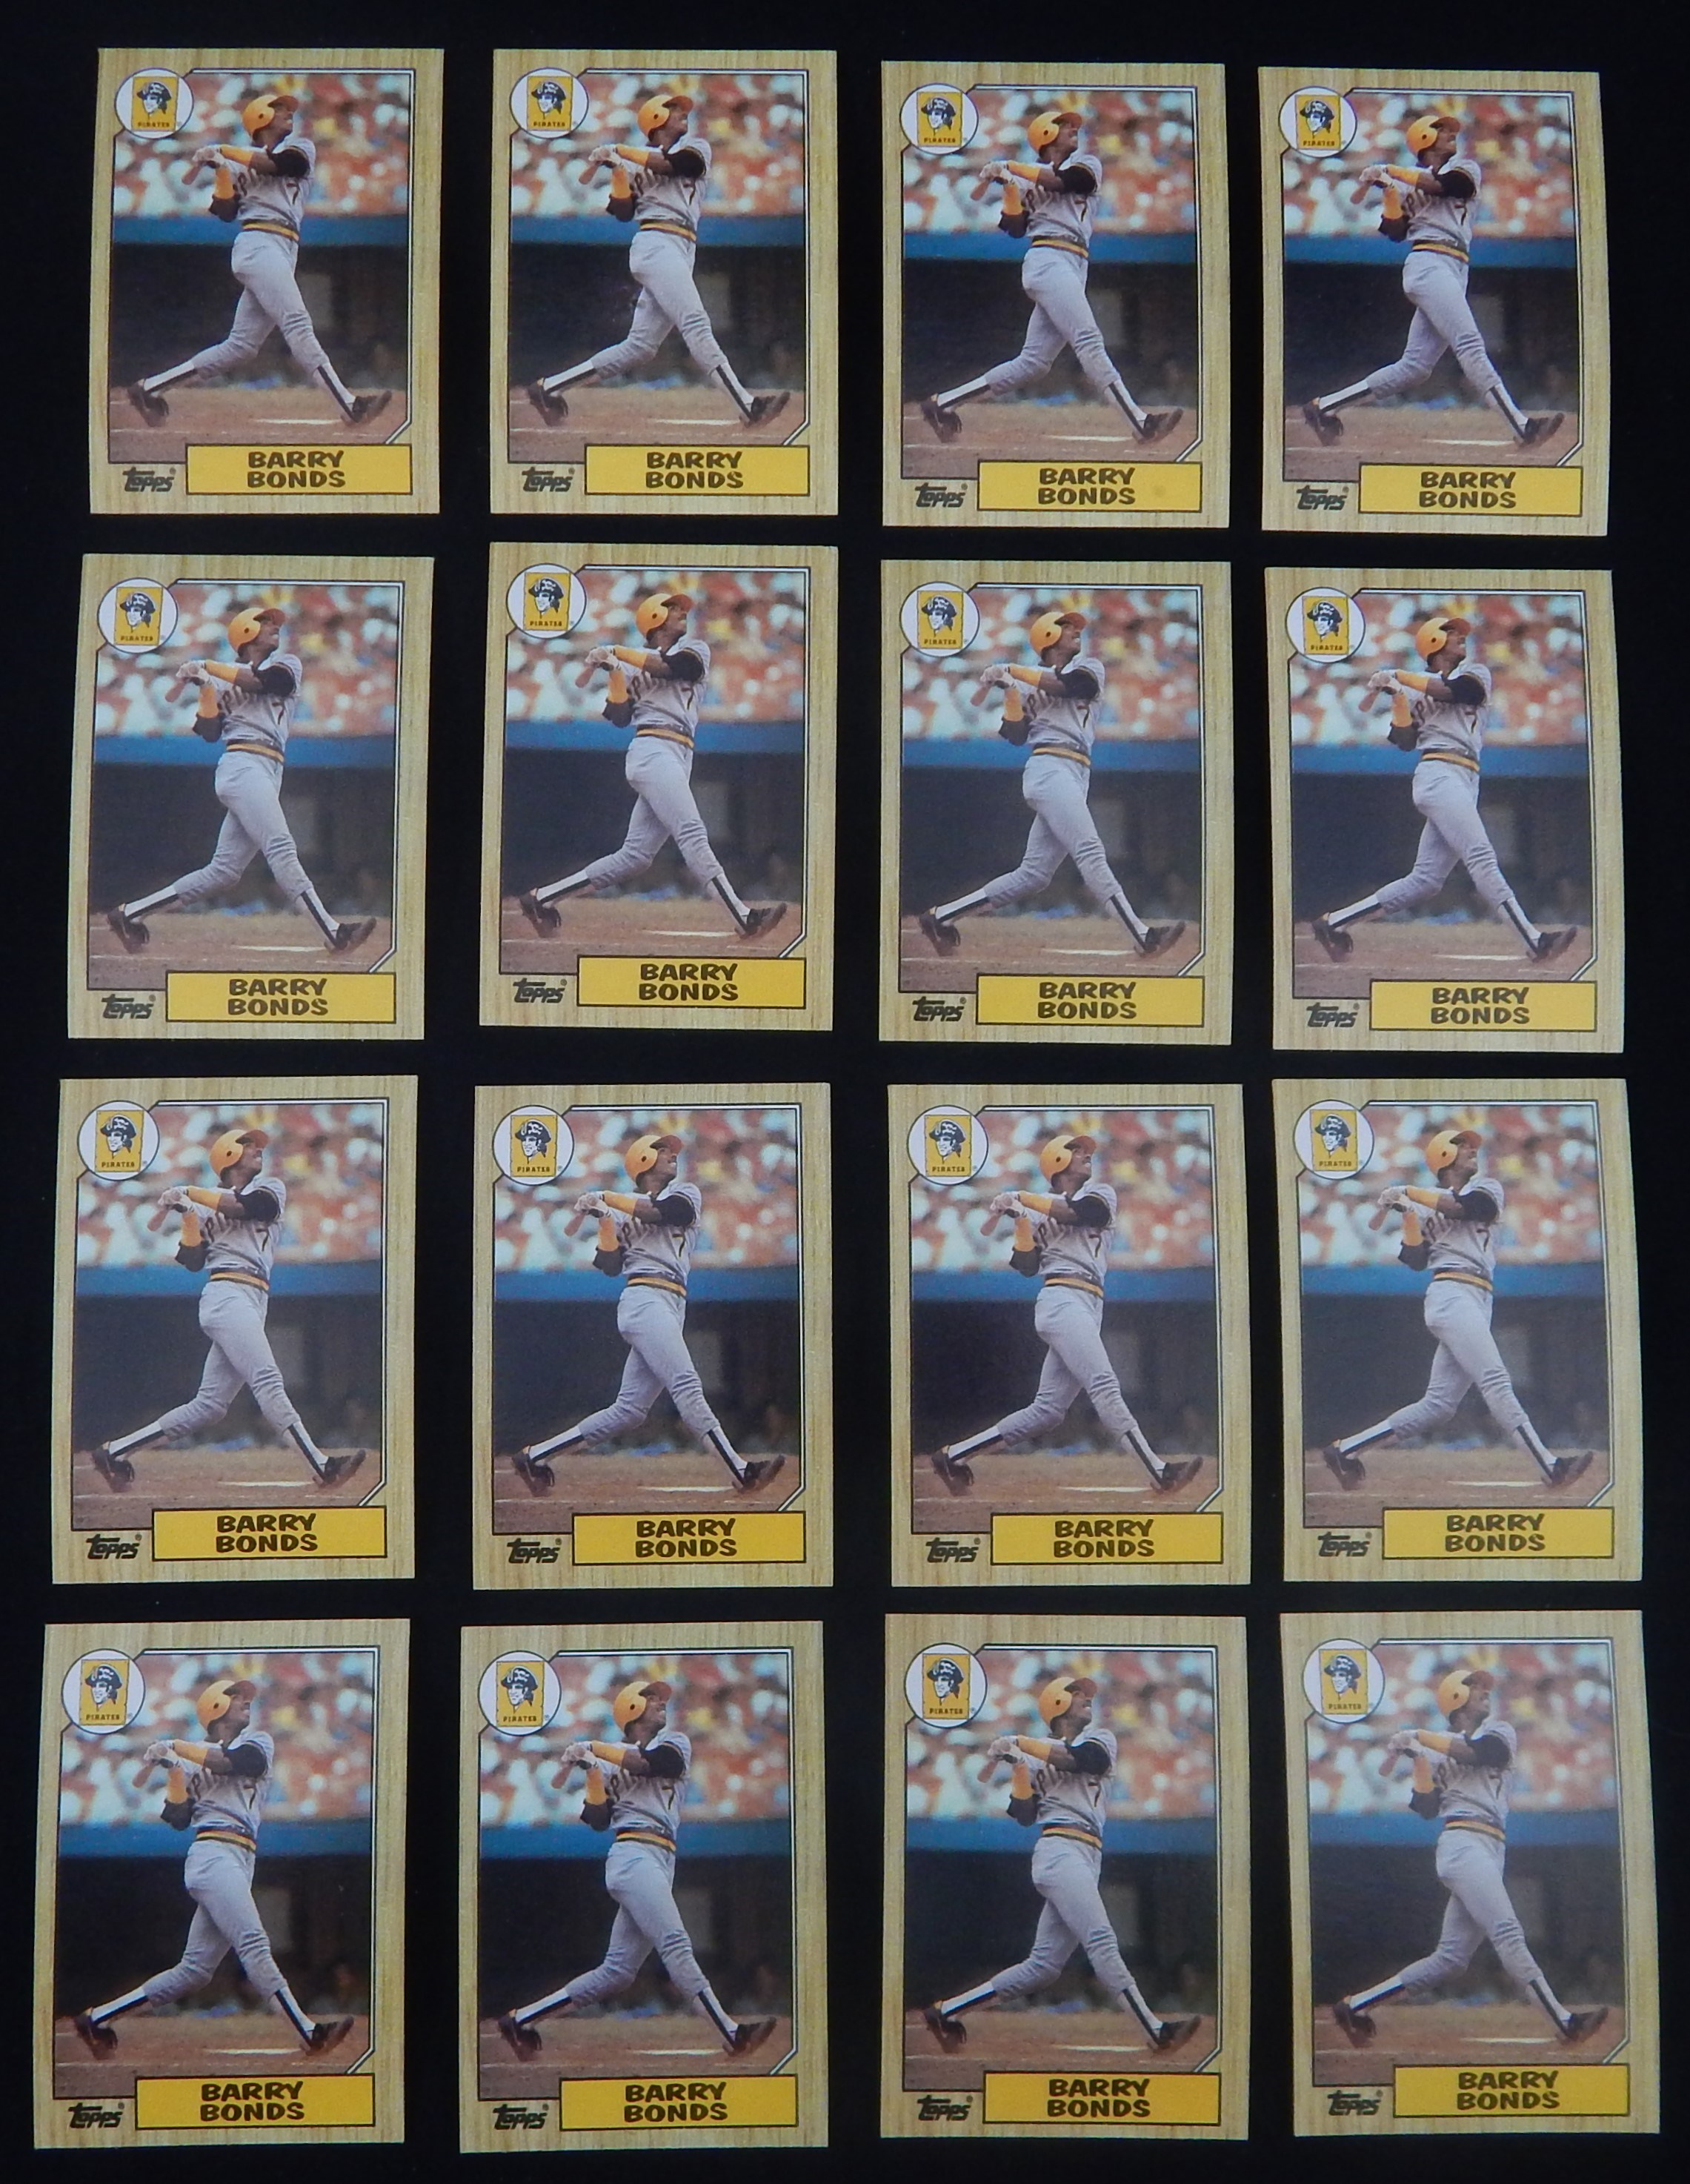 Mint 1987 Topps Baseball Cards w/Complete Sets (16,000+ cards)